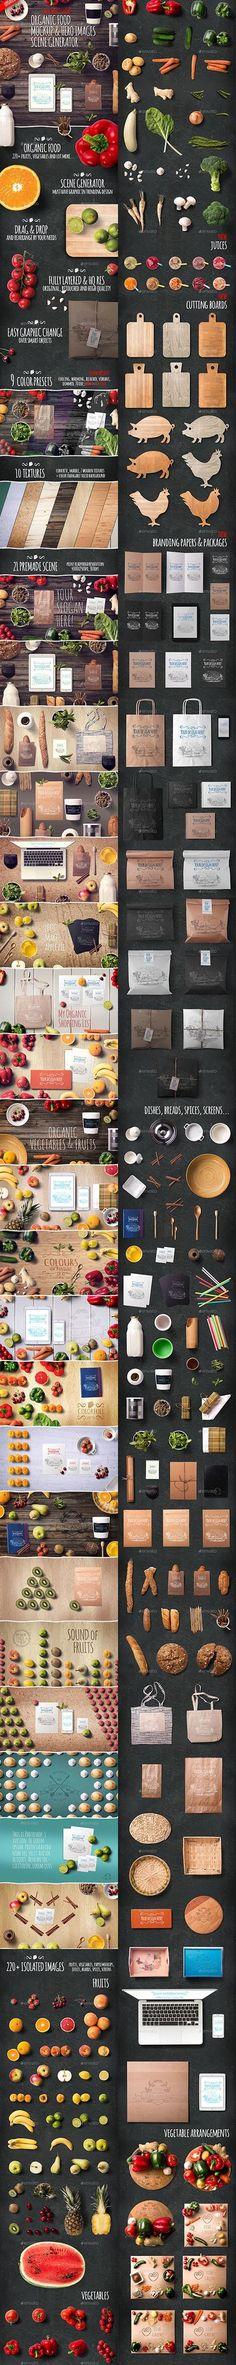 Graphicriver - Organic Food Mockup & Hero Images Scene Generator - 12125621